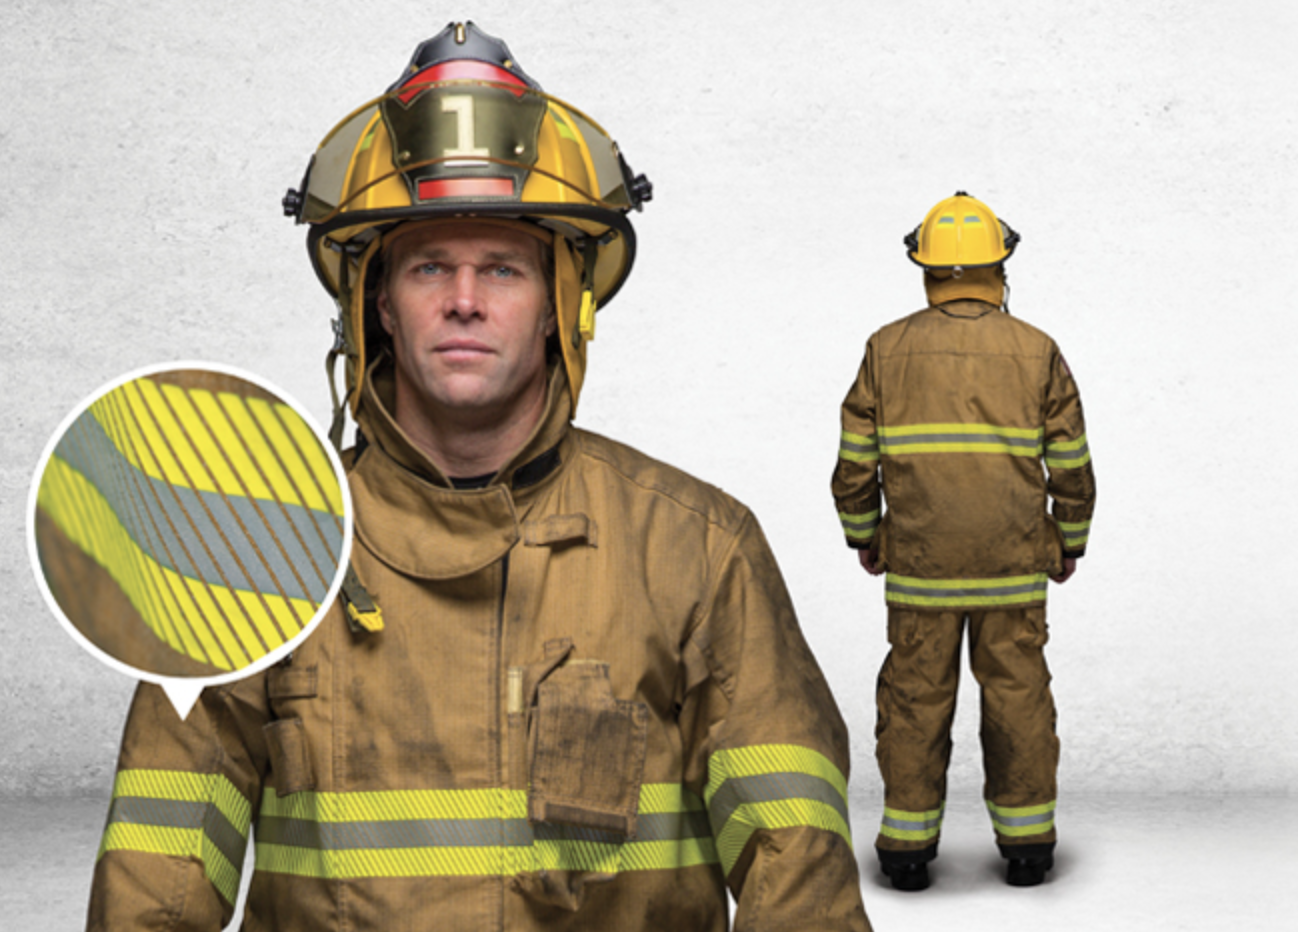 3M Submitted Safety Gear